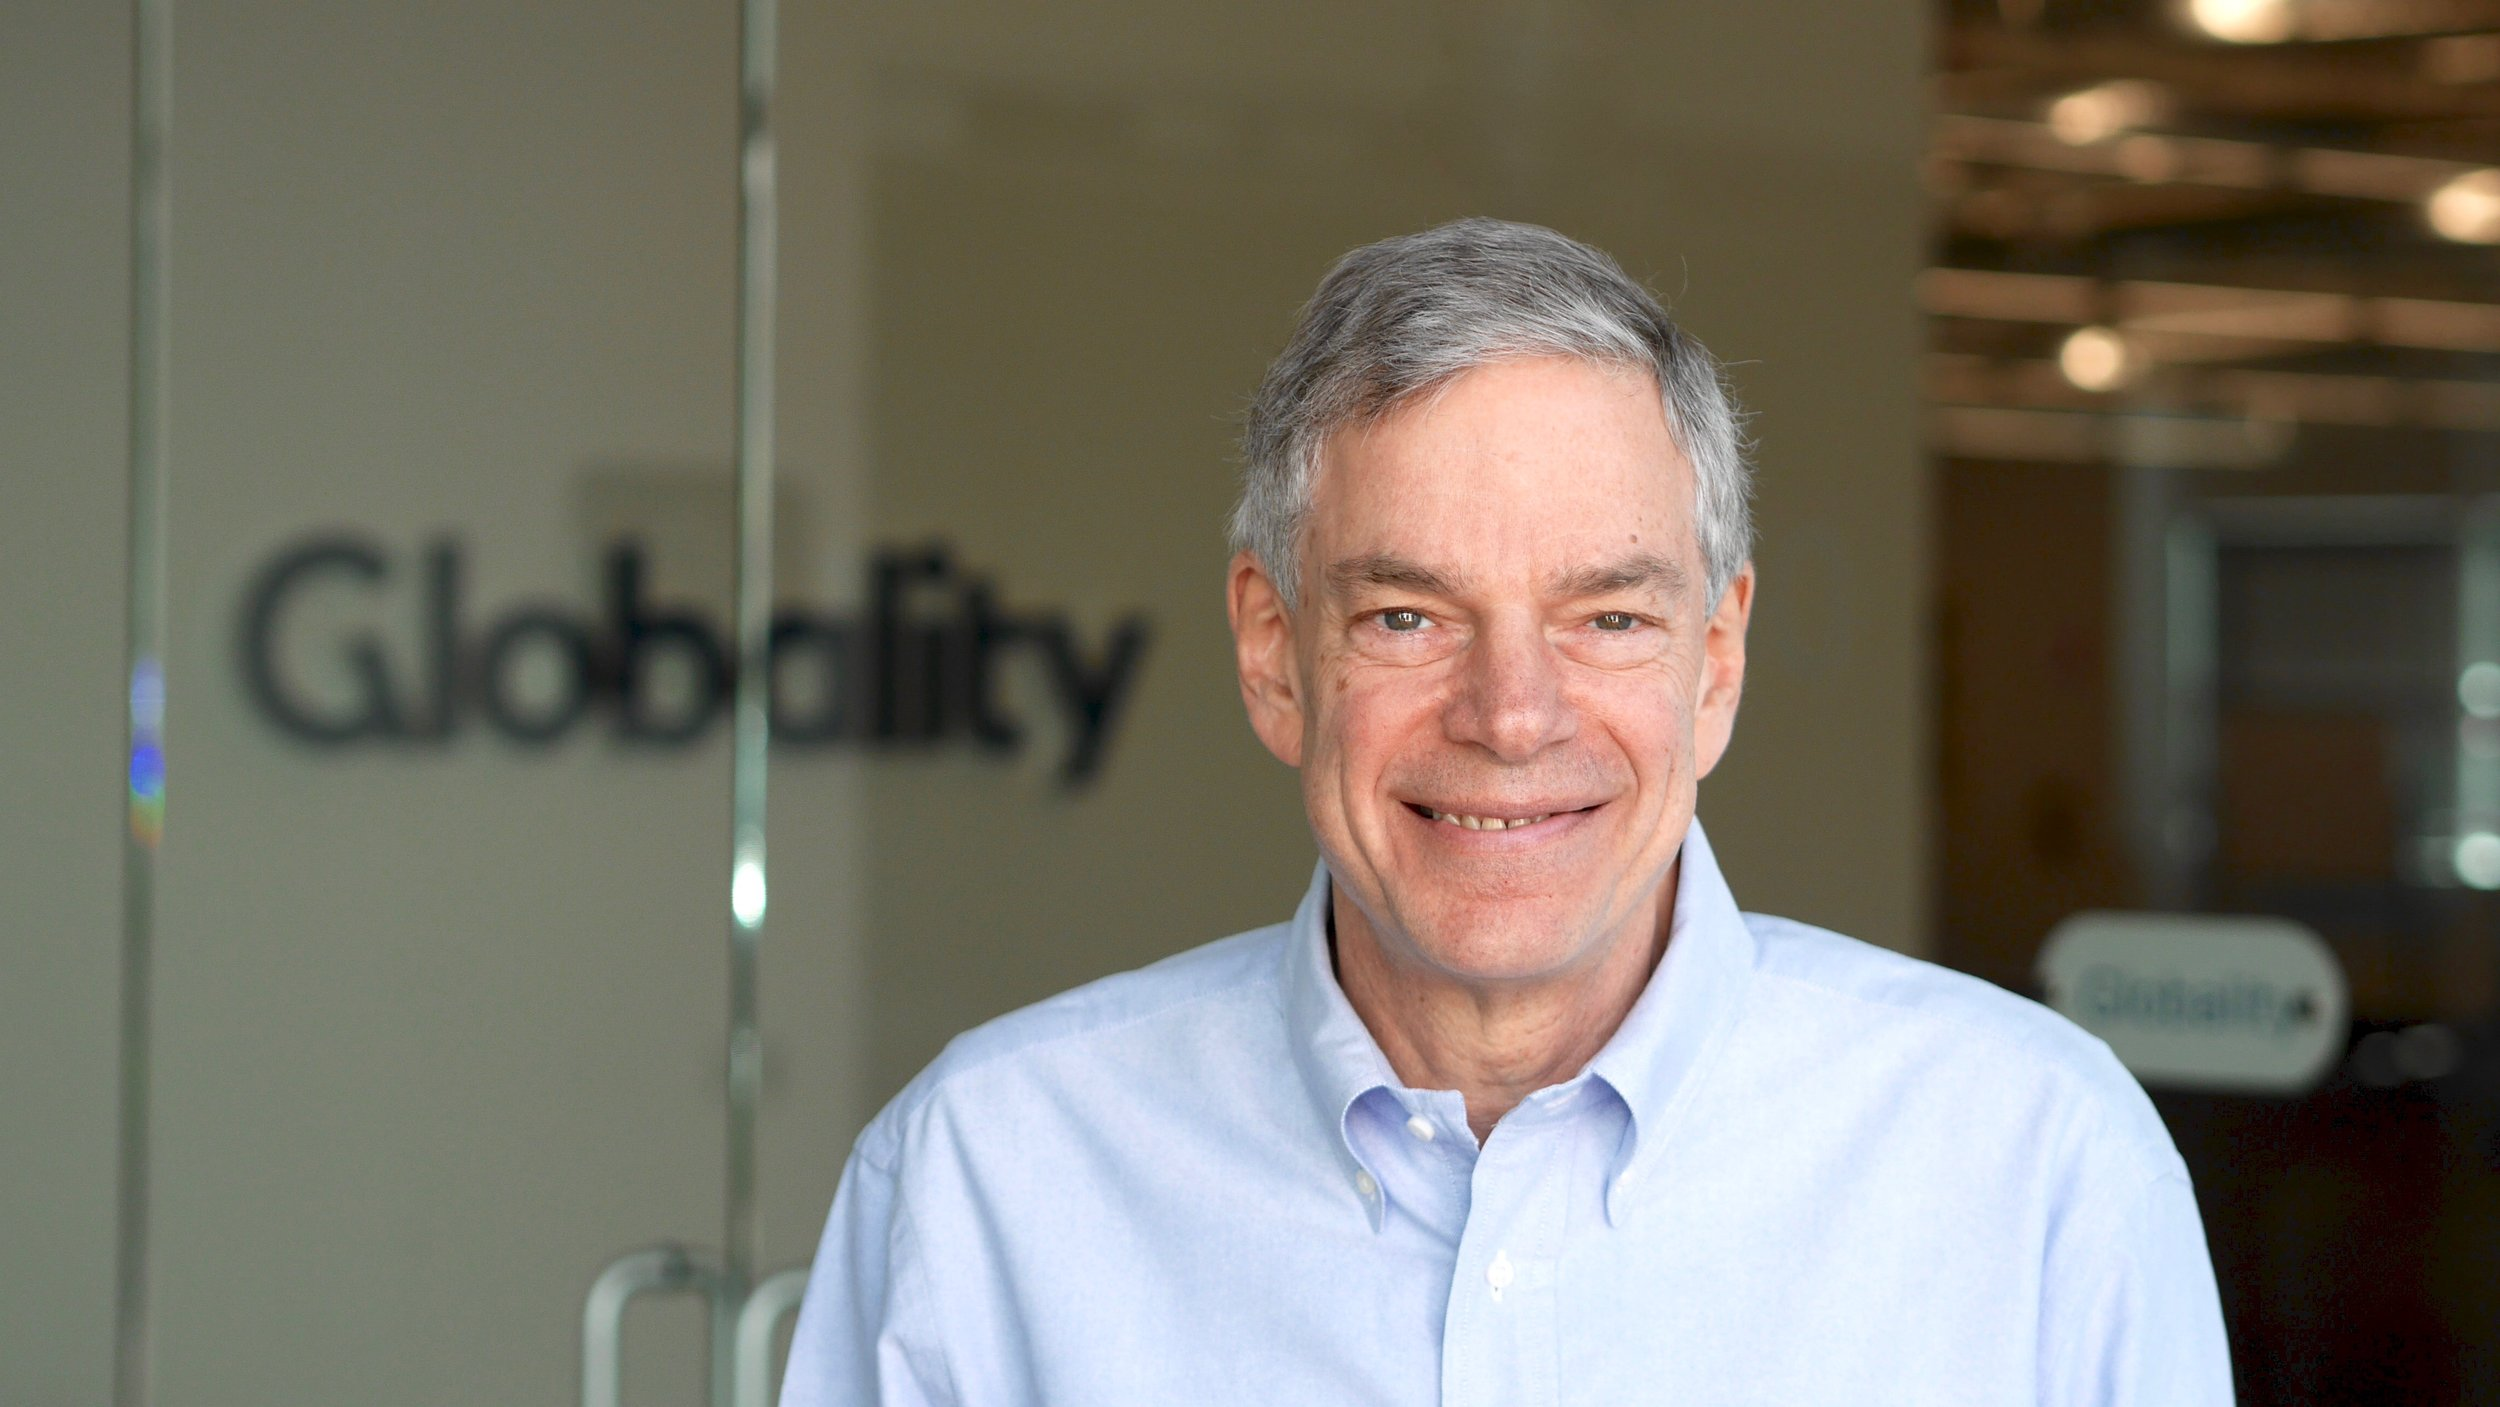 Joel Hyatt, co-founder, chairman and CEO of Globality, sold his latest venture Current TV to Al Jazeera in 2013